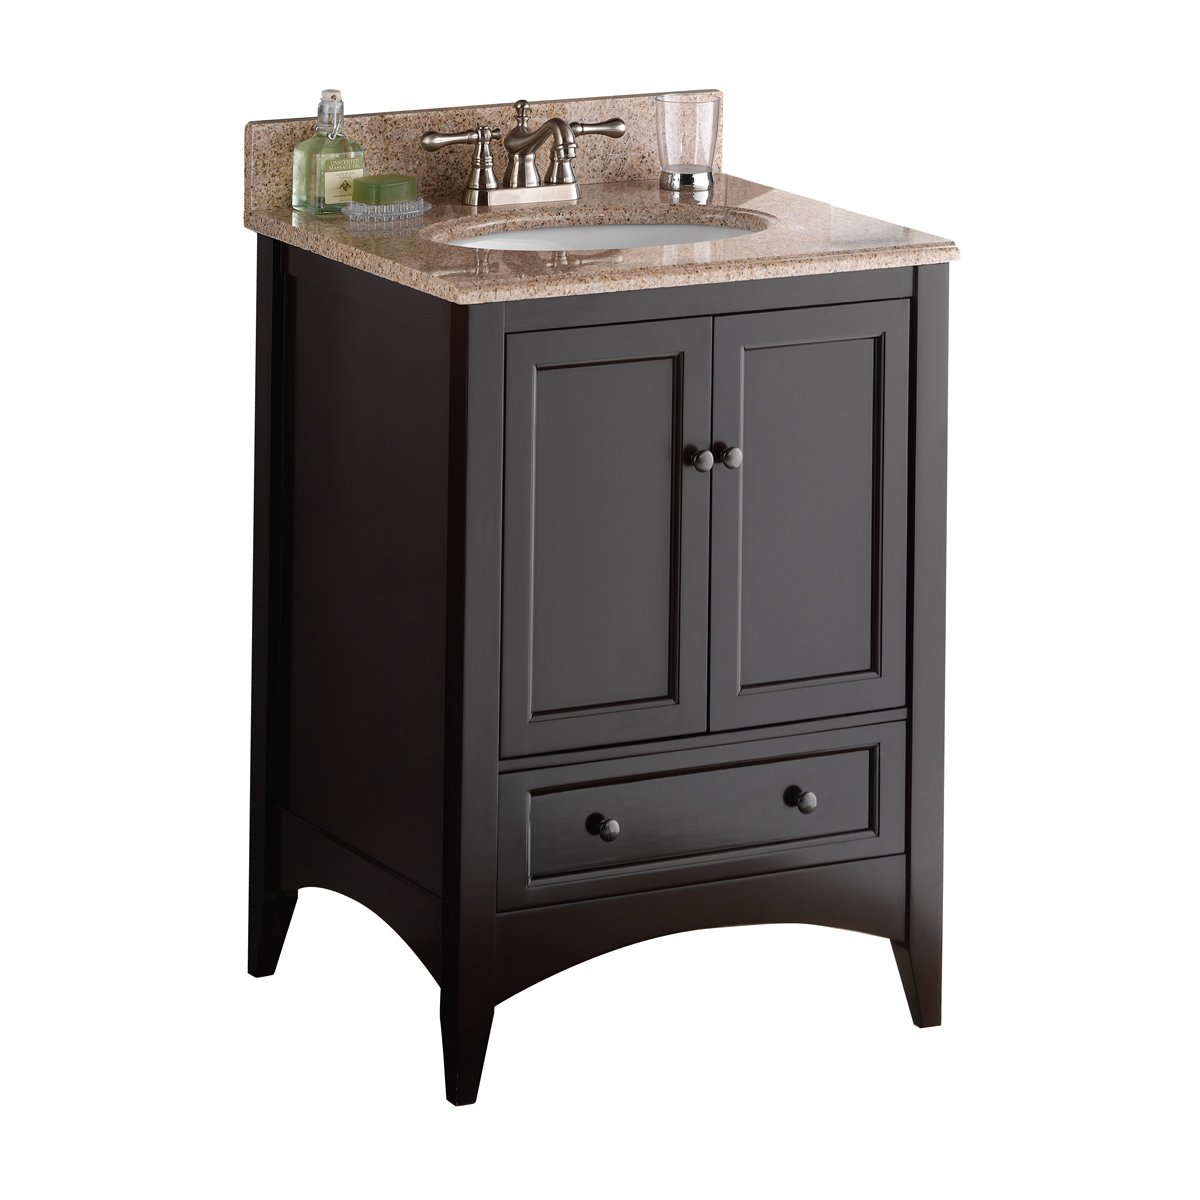 24 in bathroom vanity with sink. Foremost BECA2421D Berkshire 24 Inch Espresso Bathroom Vanity  Sinks Amazon com